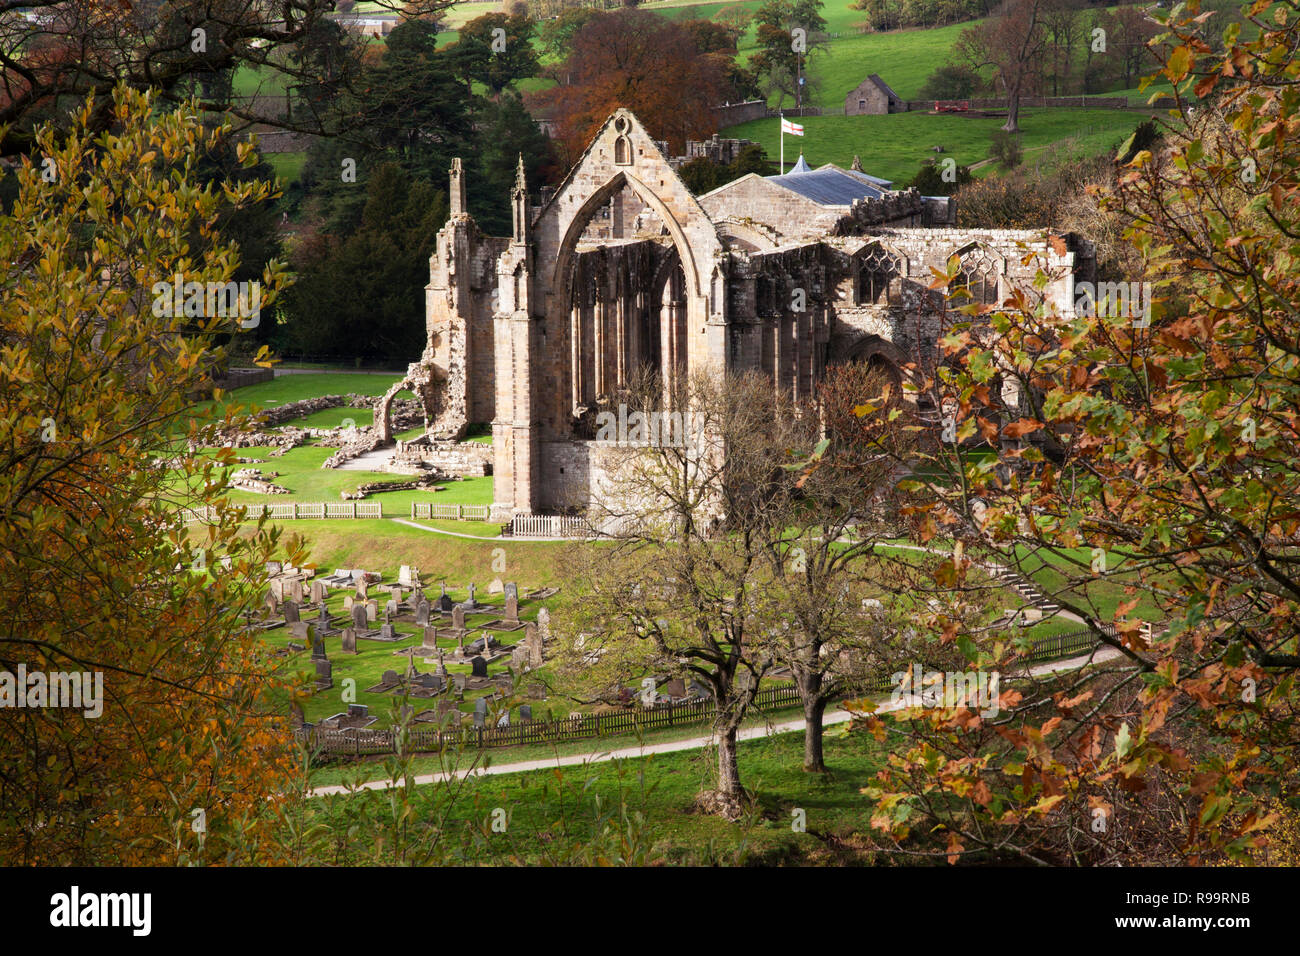 Bolton Abbey, Priory Ruins in Autumn, North Yorkshire Dales - Stock Image